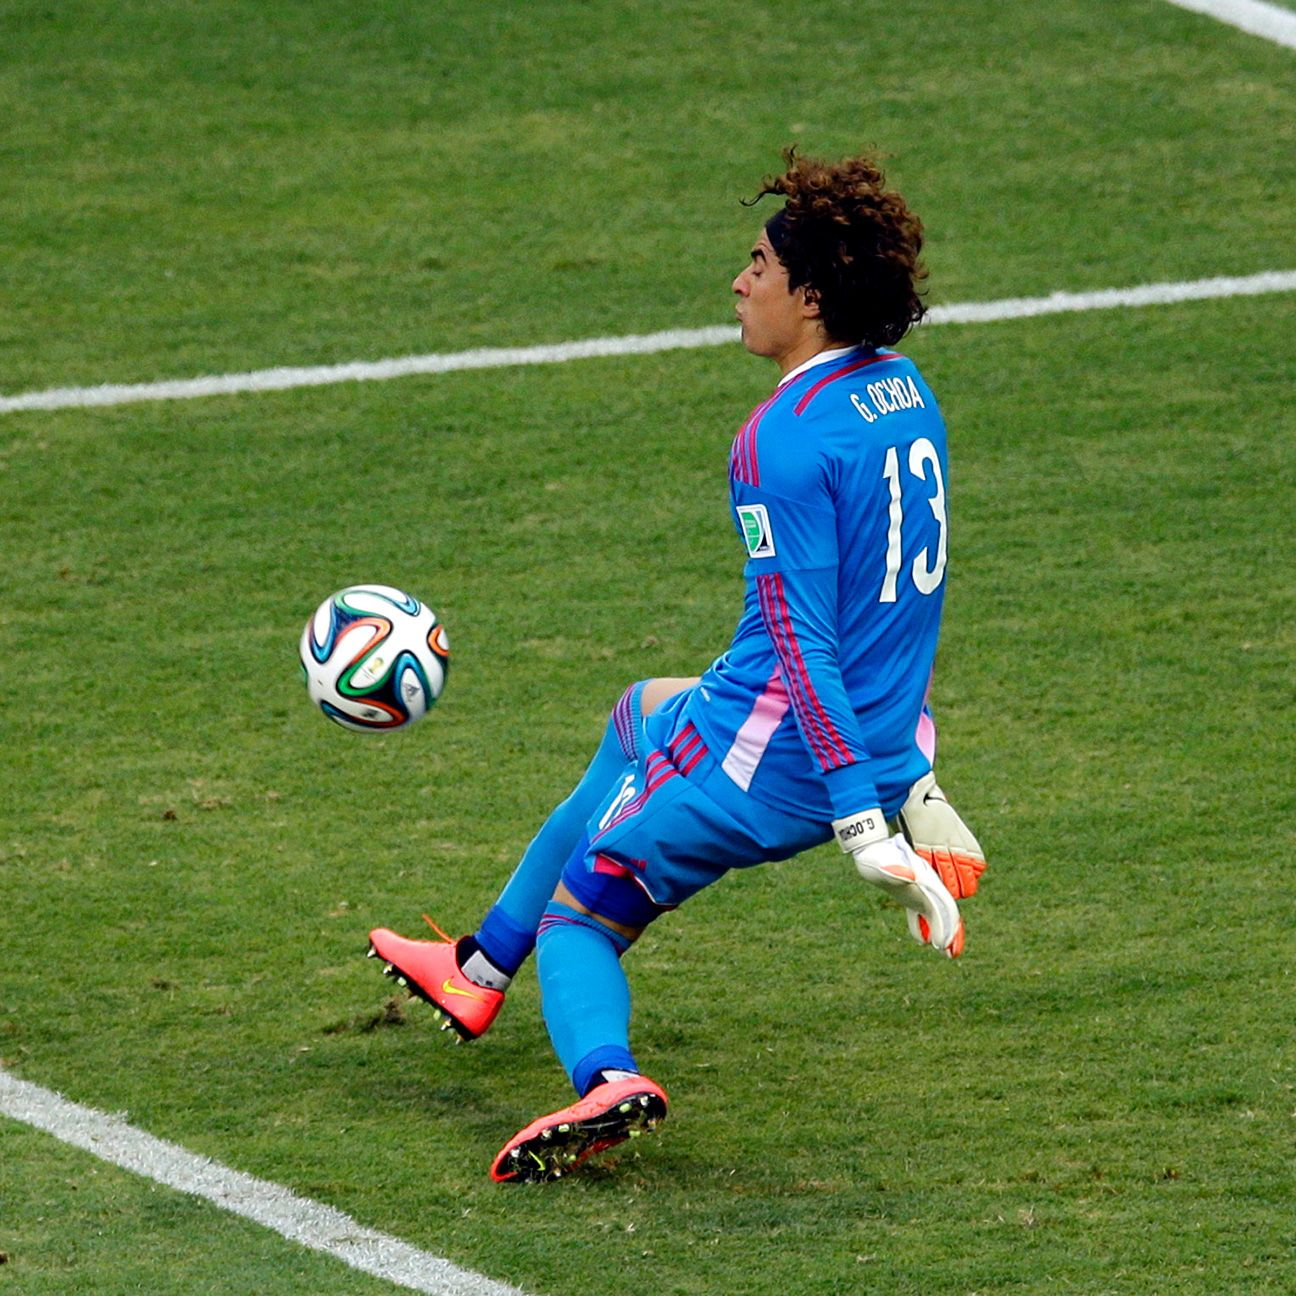 The performance of Memo Ochoa on Tuesday versus Brazil will have likely caught the attention of many top European clubs.